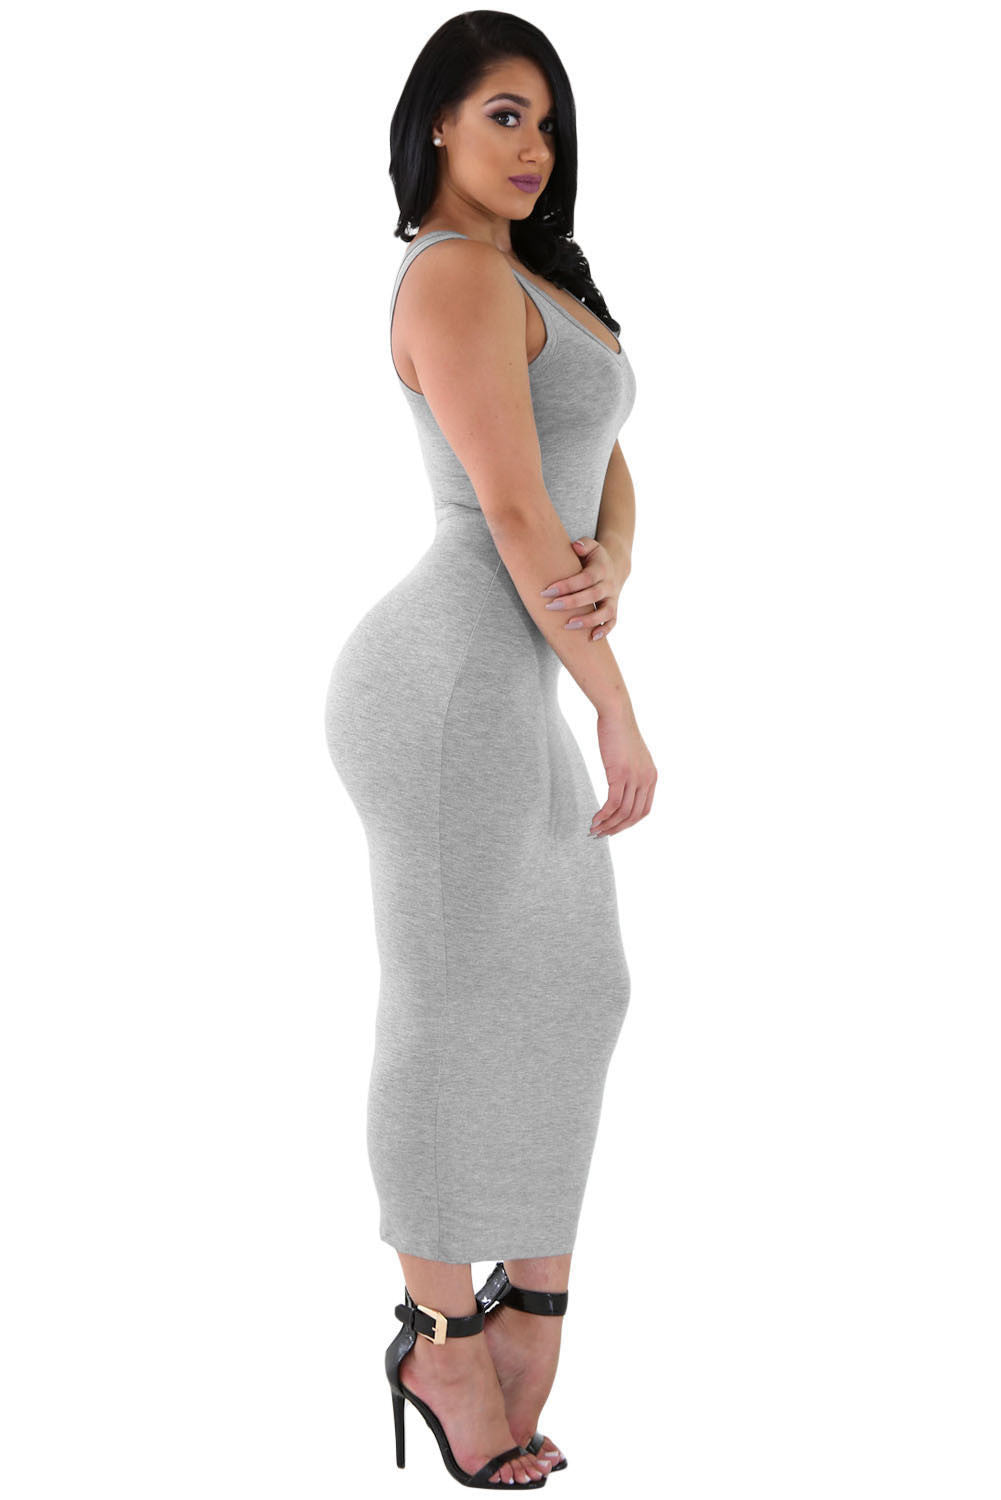 Her Stylish Grey Stretchy Fit Long Sundress Jersey Dress